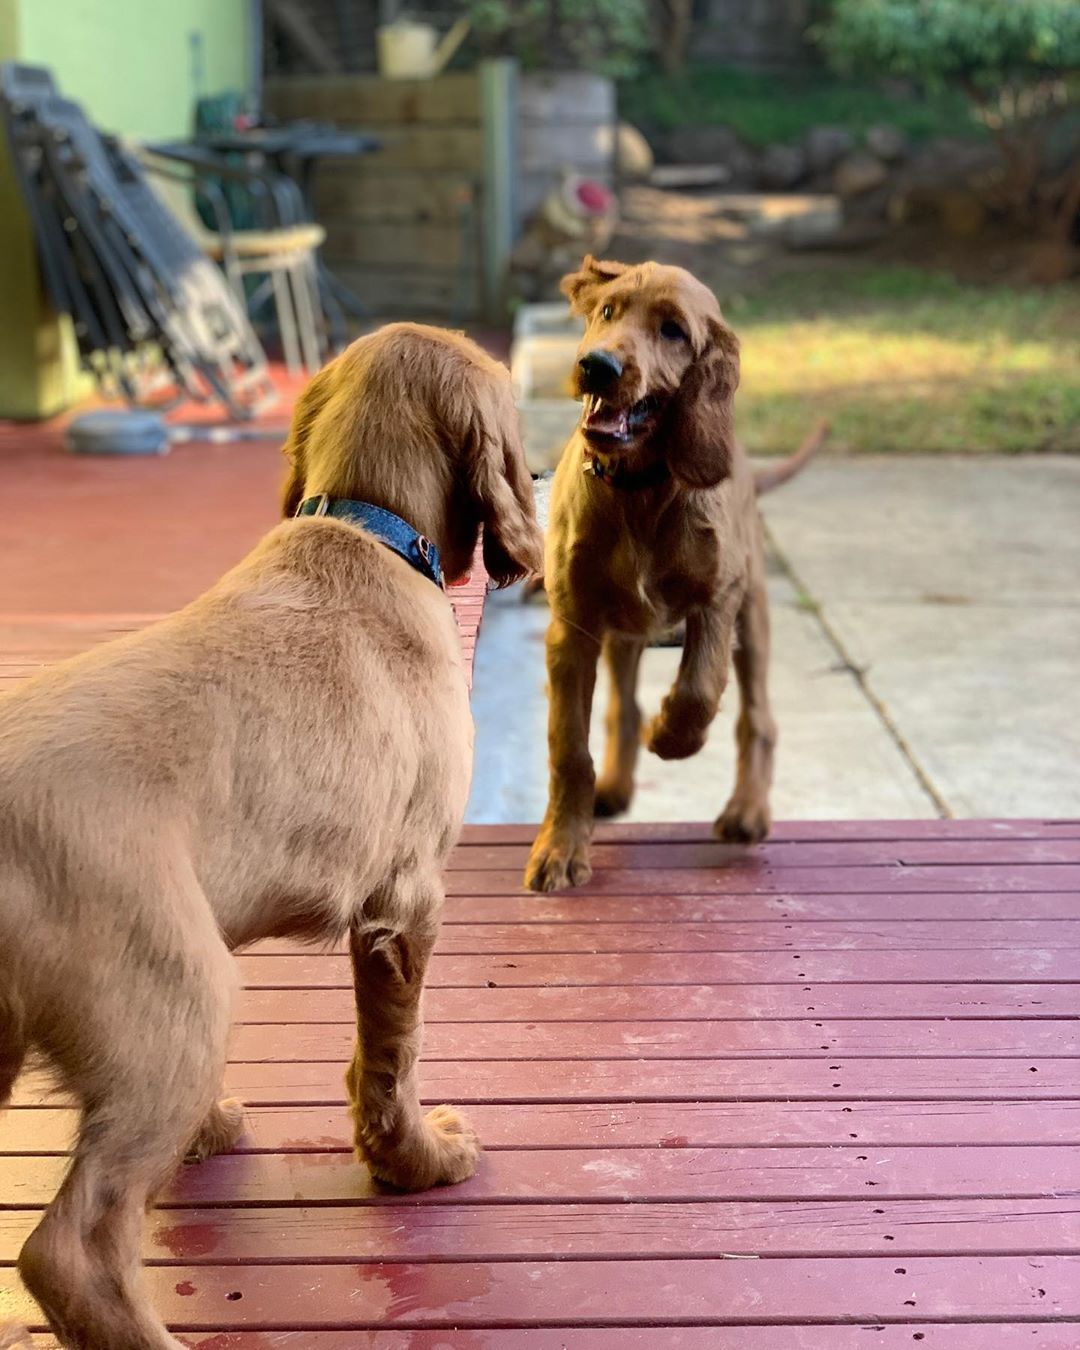 Pin by Alice on Puppies! in 2020 Irish setter, I love